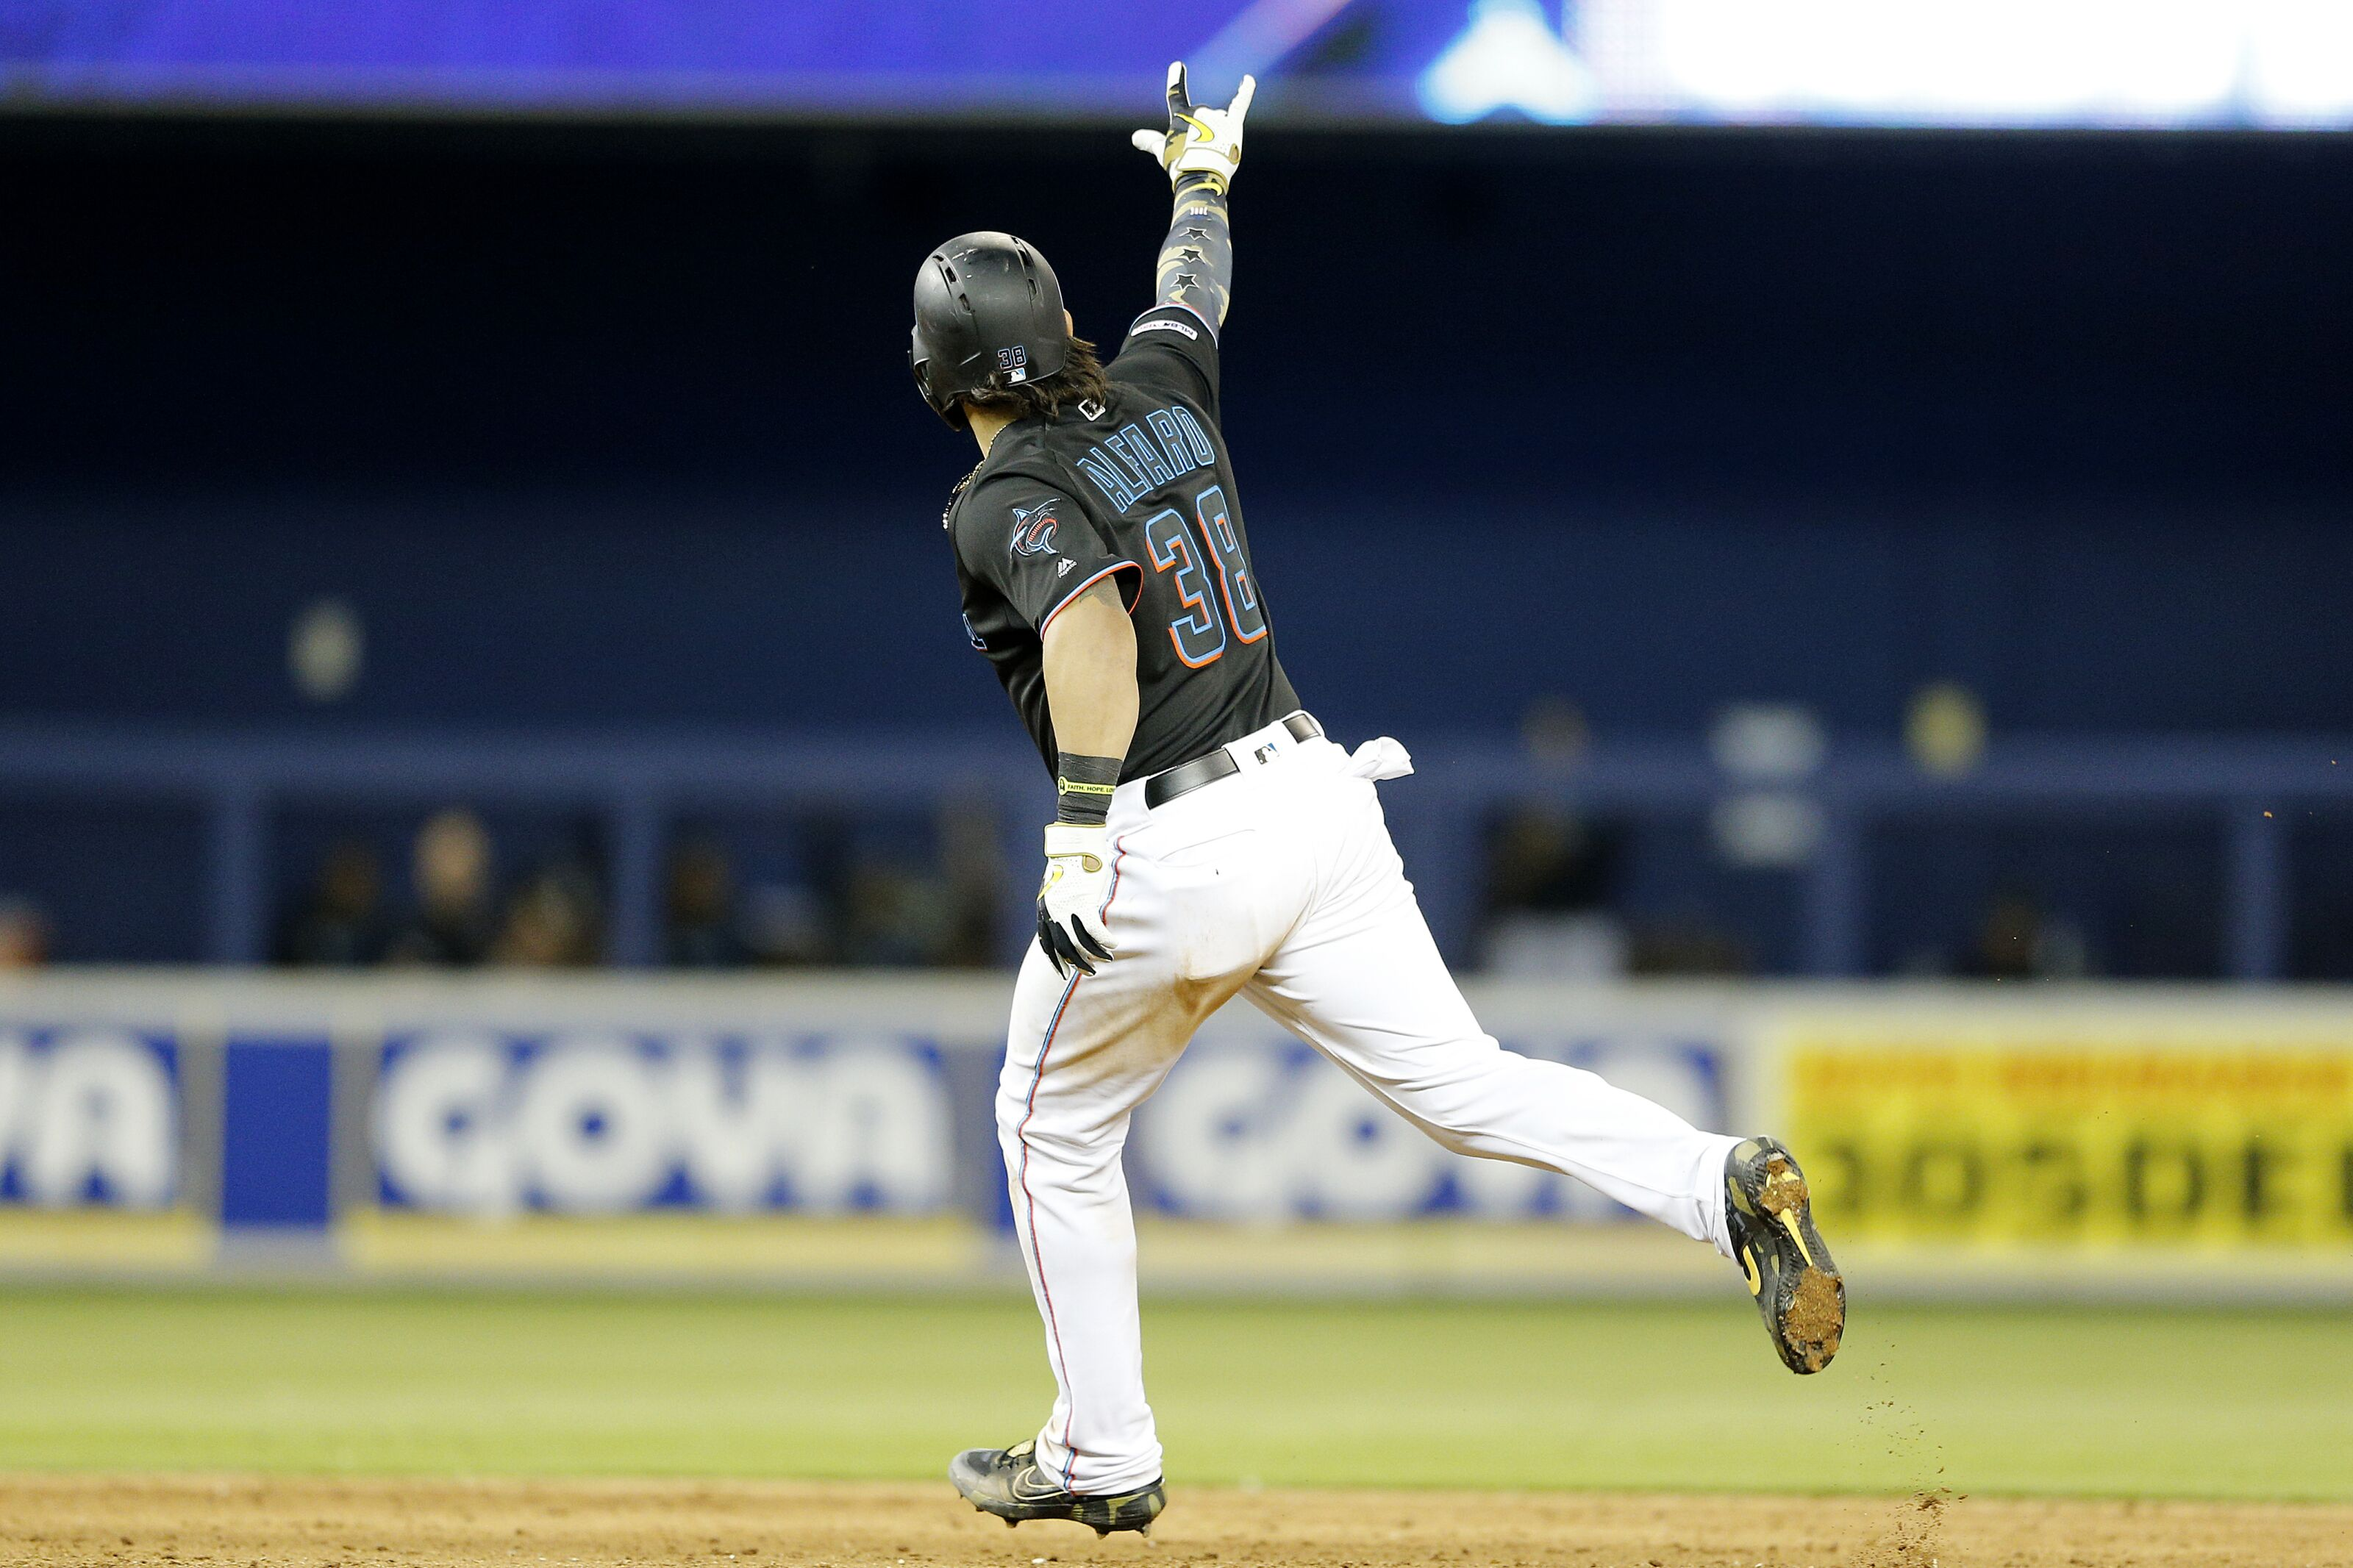 Miami Marlins Tag Seven on deGrom, Defeat New York Mets 8-6